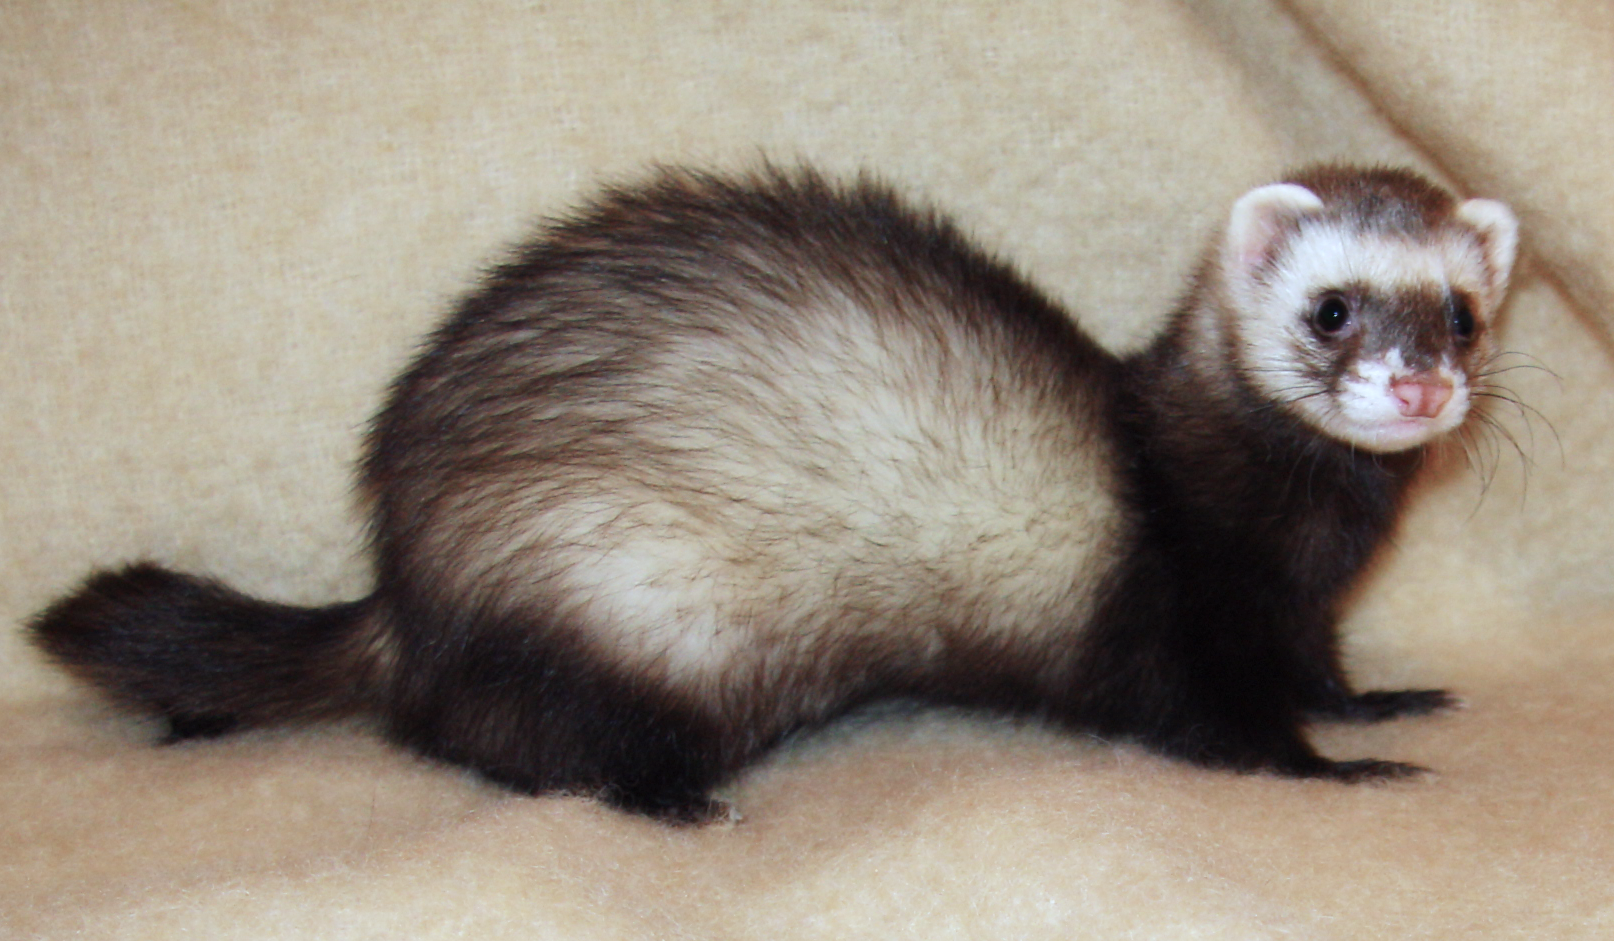 http://upload.wikimedia.org/wikipedia/commons/3/32/Ferret_2008.png